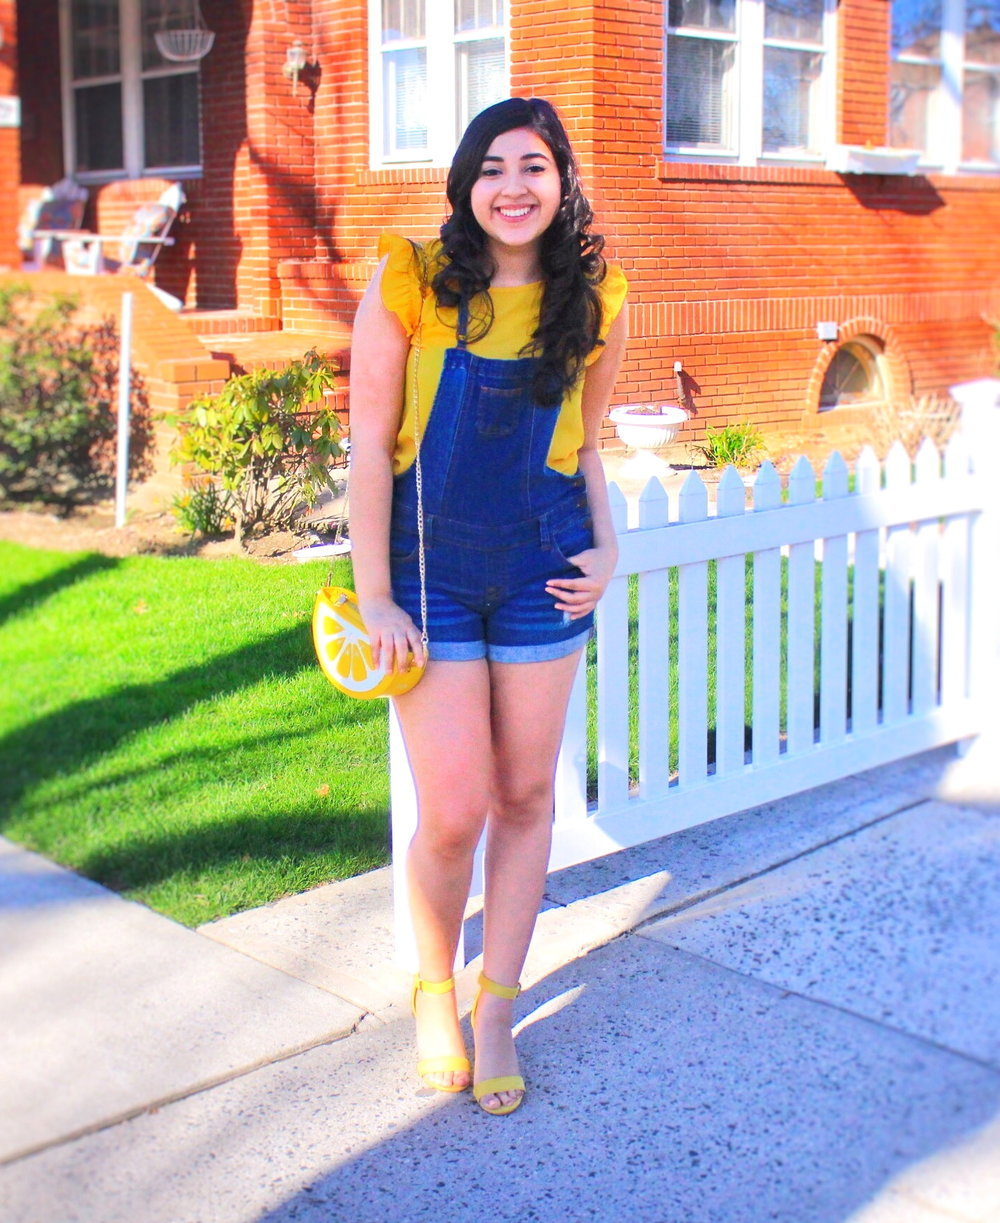 OOTD, outfit of the day, yellow, outfit ideas, easy outfit ideas, outfit ideas for girls, women, females, woman, forever 21, asos, burlington, burlington coat factory, shein, ruffles